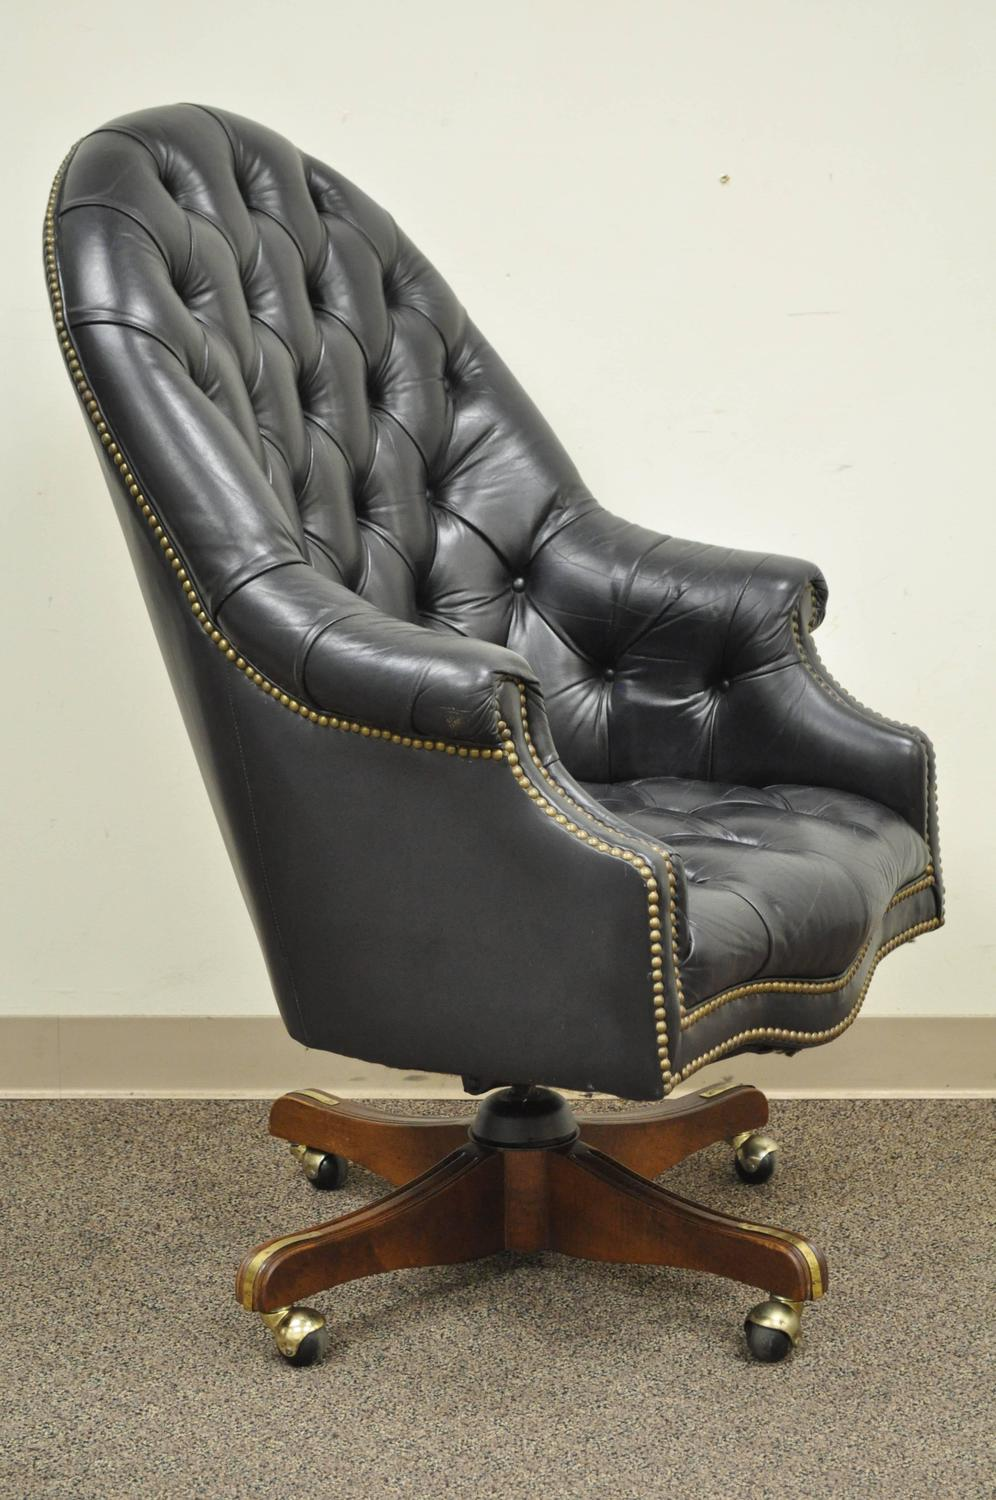 black bar stool chairs chiavari wedding llc vintage deep tufted leather english chesterfield style office desk chair for sale at 1stdibs